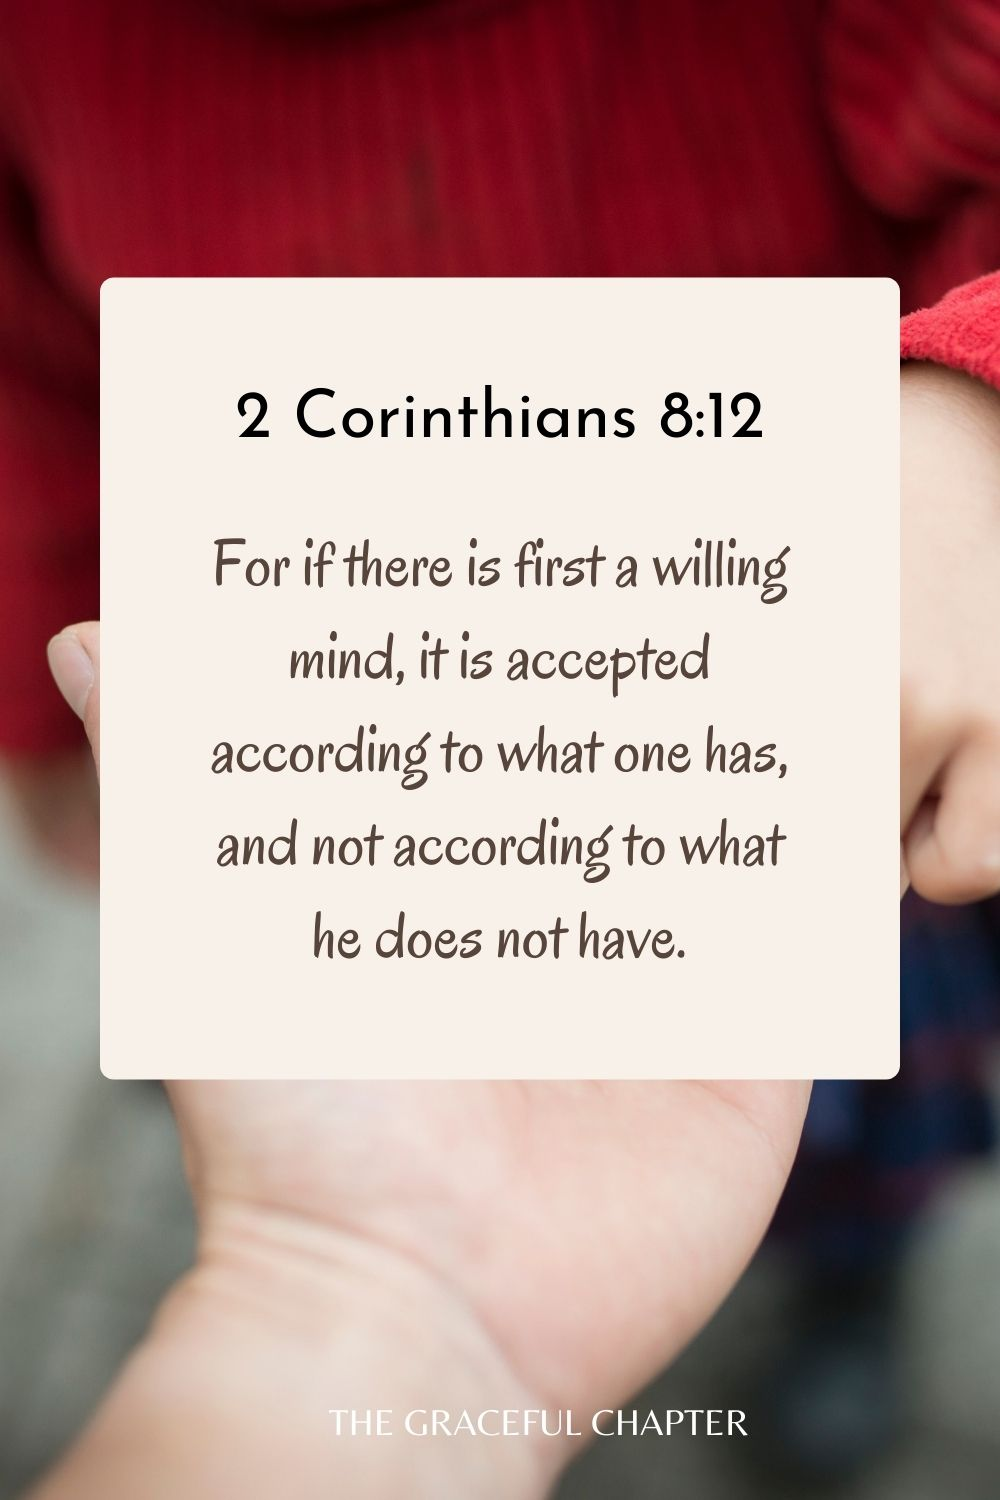 For if there is first a willing mind, it is accepted according to what one has, and not according to what he does not have. 2 Corinthians 8:12